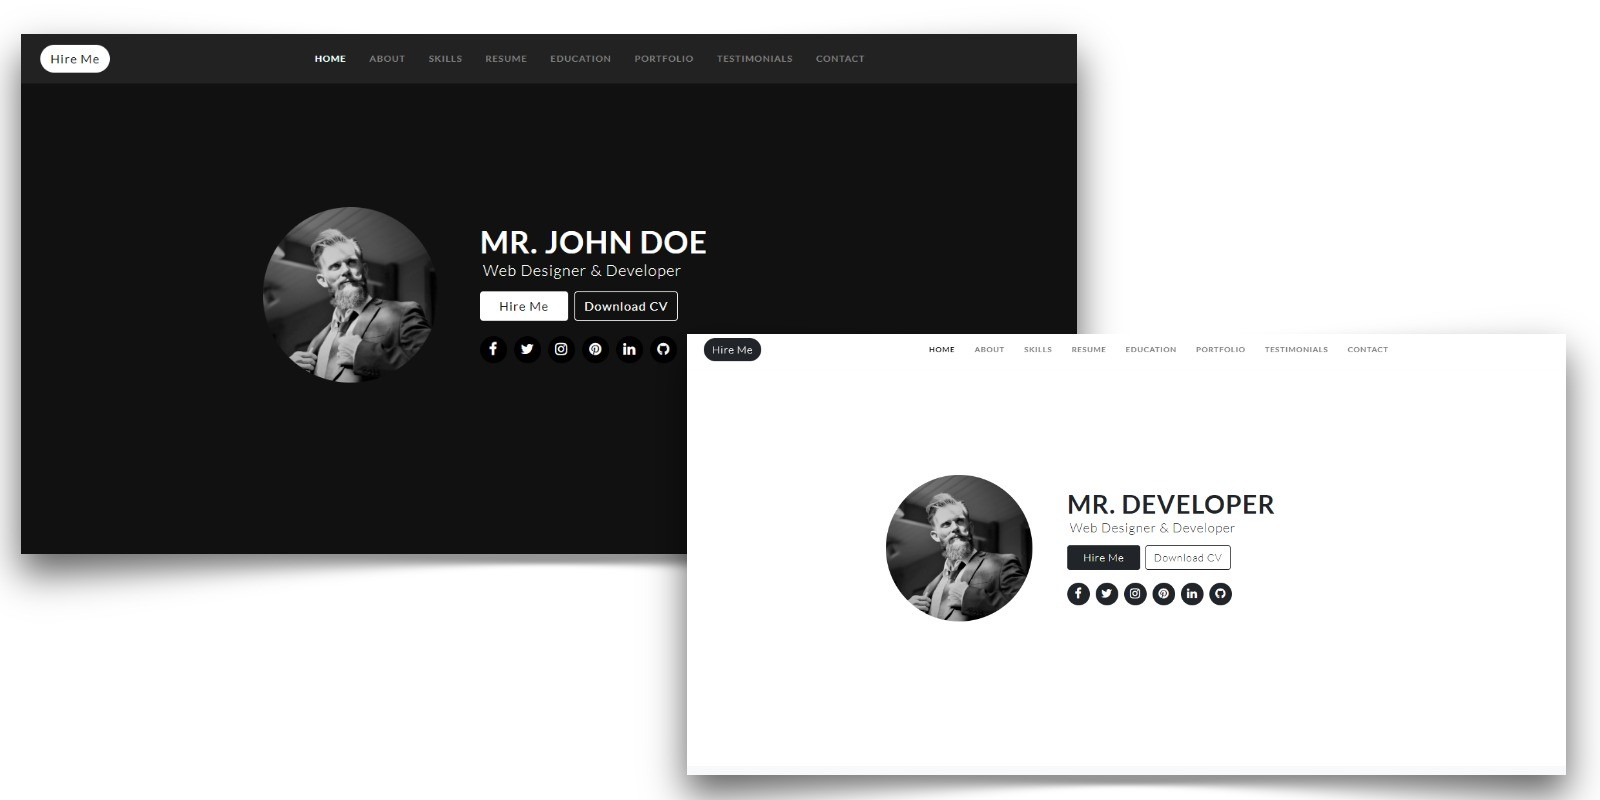 syslog ng template example - wordpress portfolio template images professional report